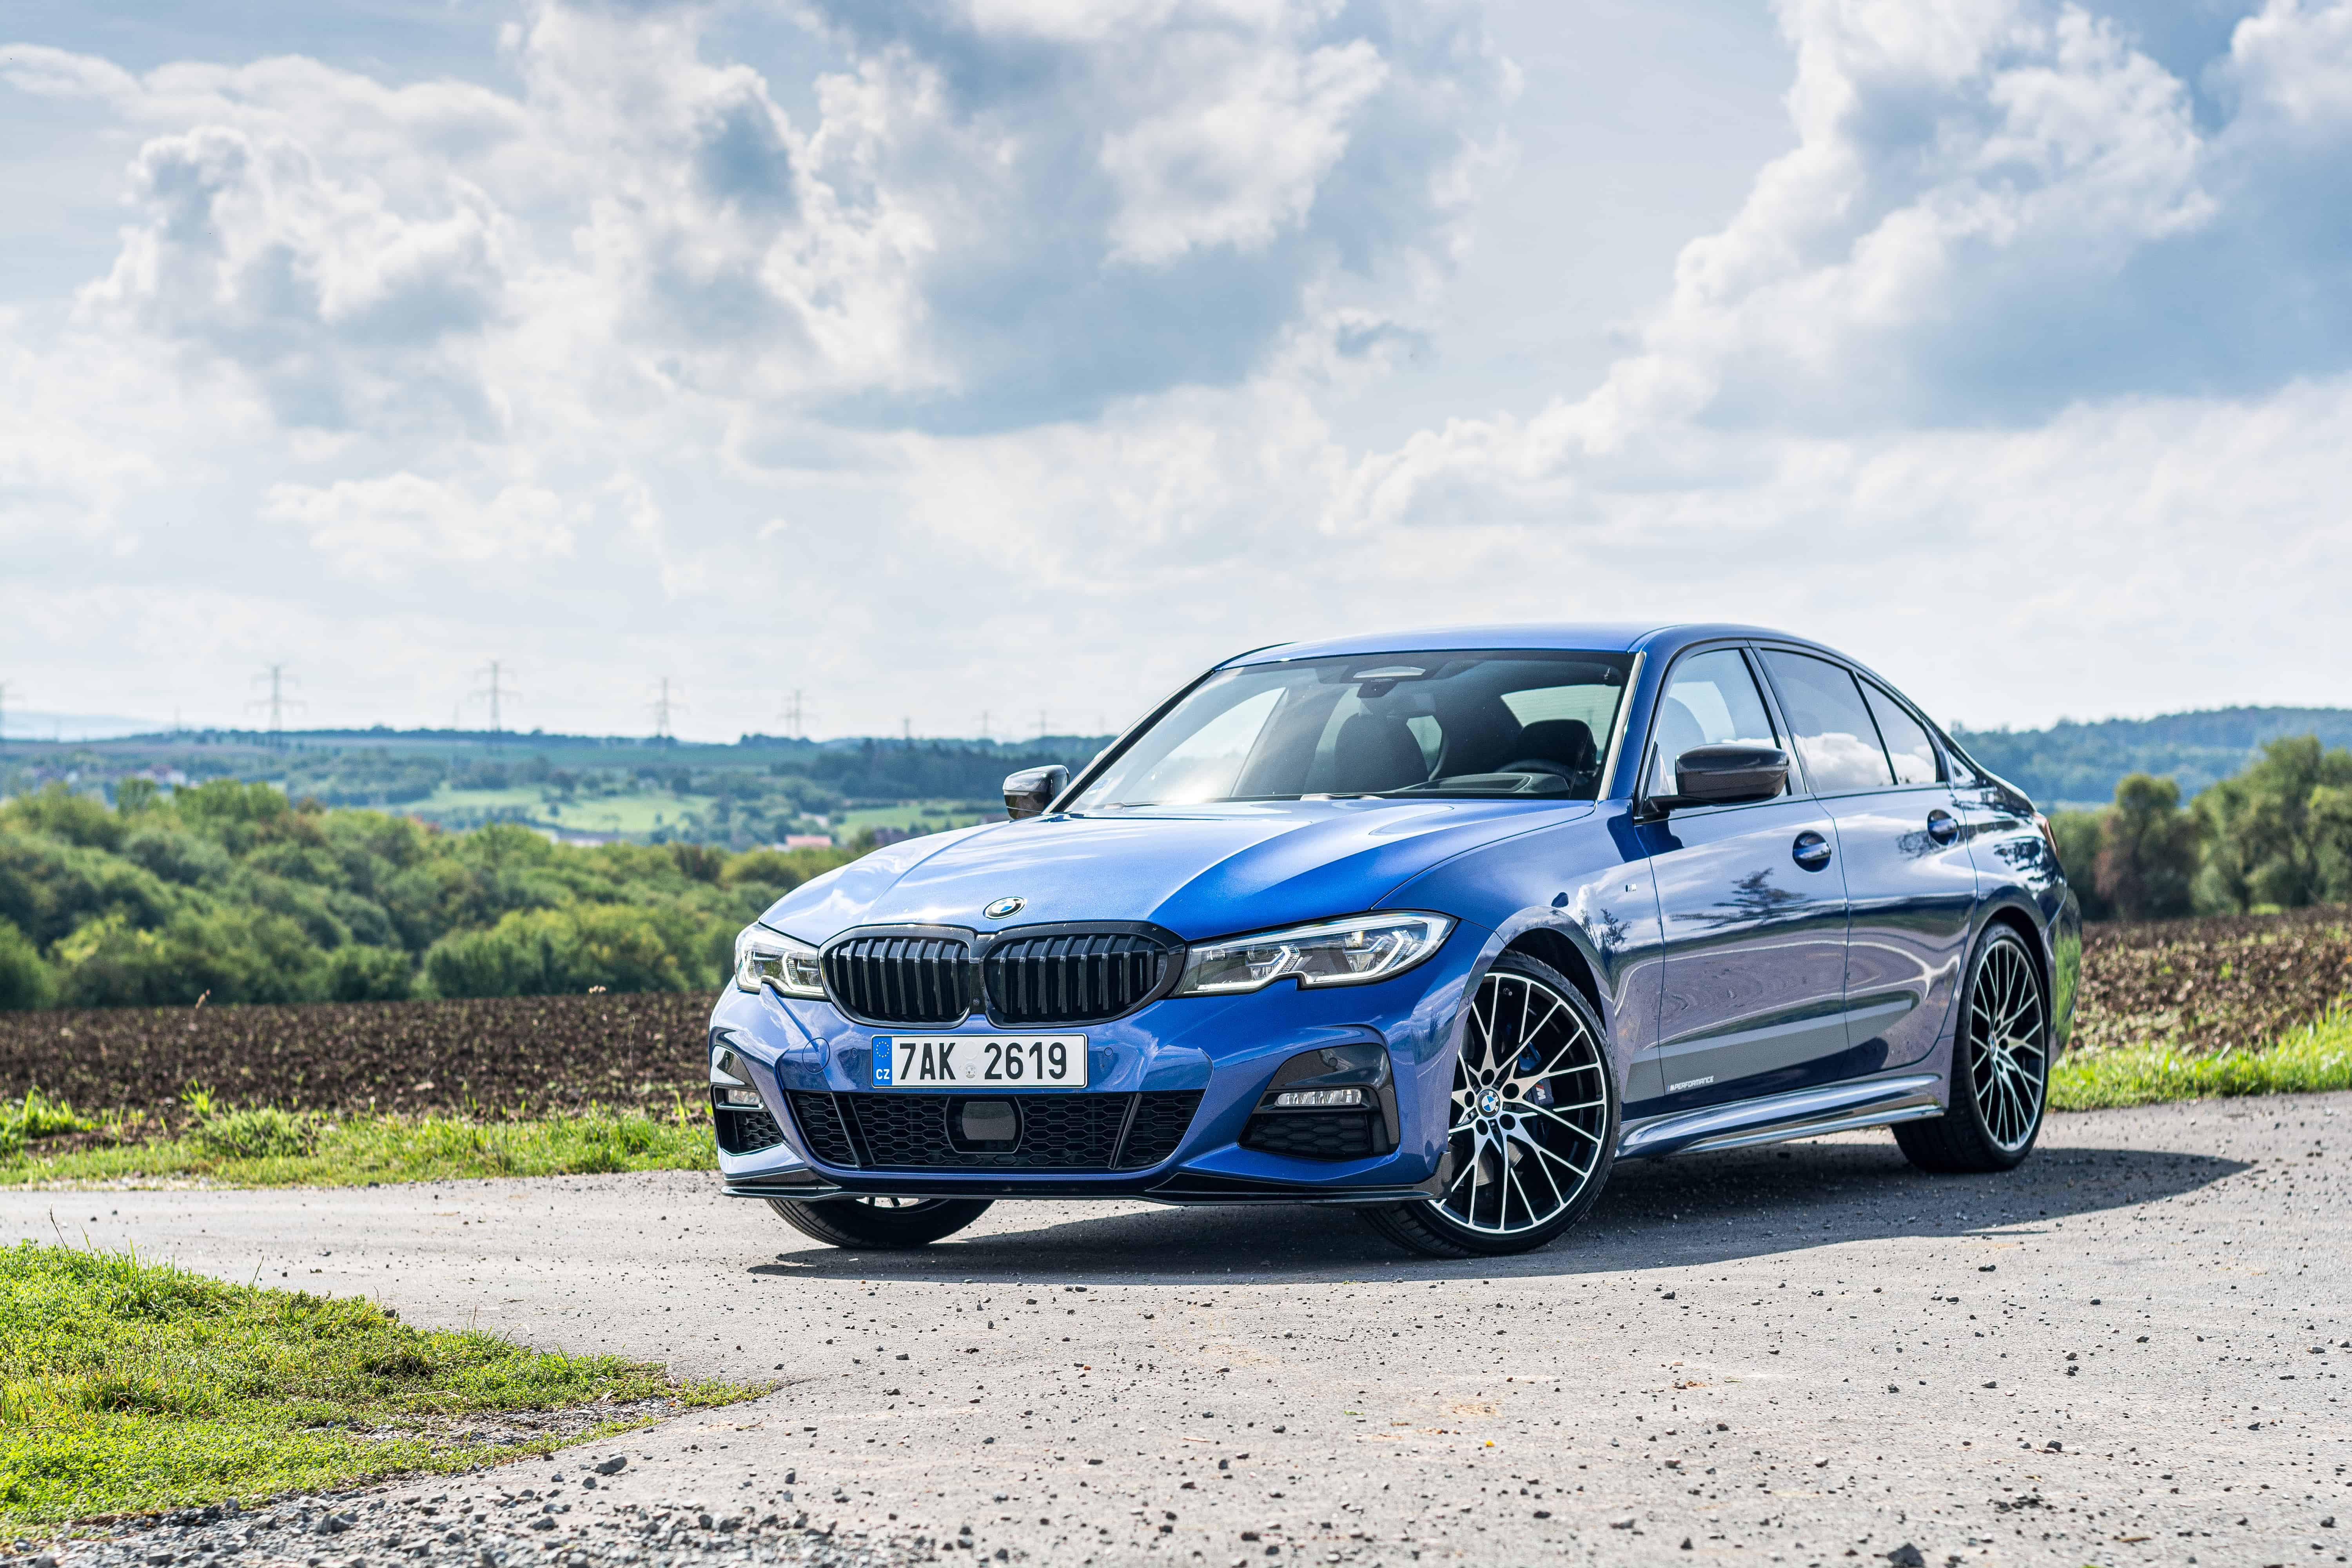 New BMWs May Have Seat Belt Issue